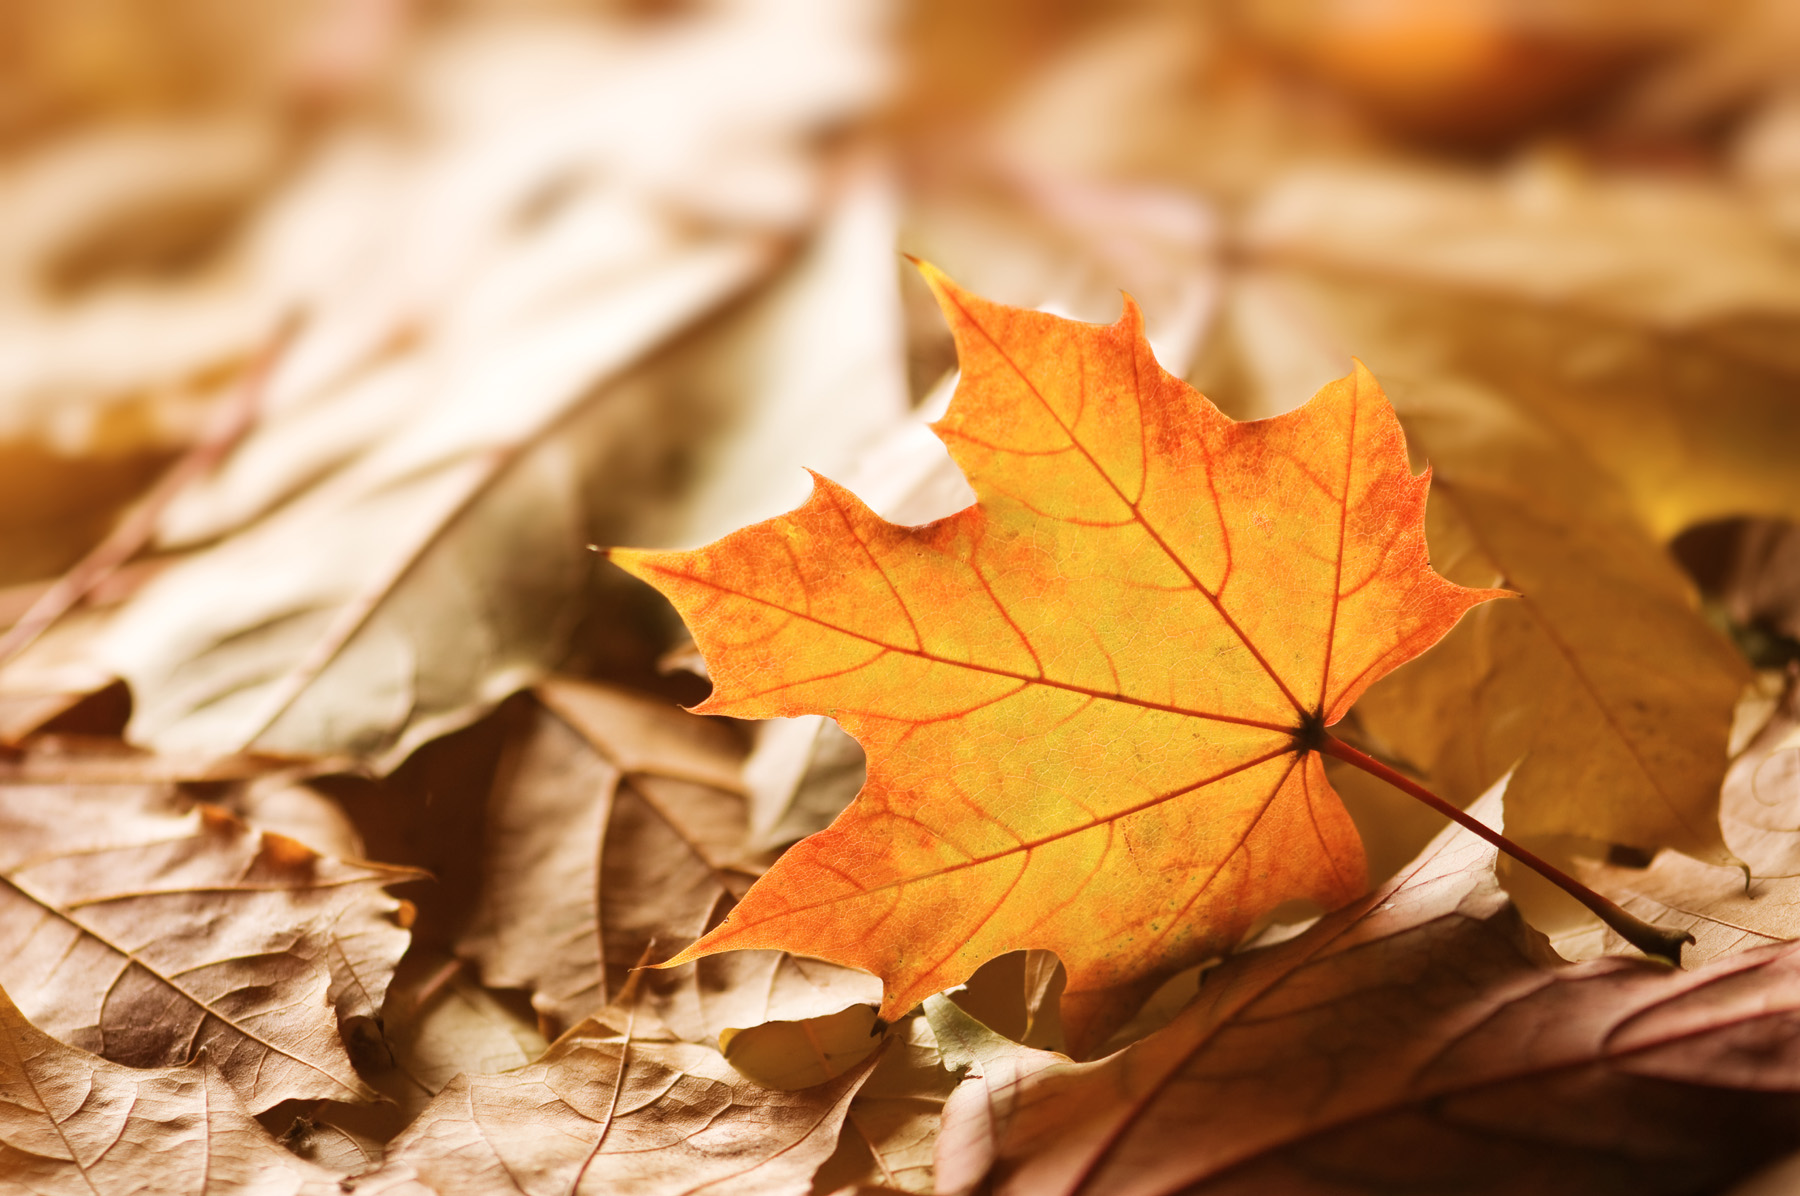 Autumn leaves on the ground features 52358